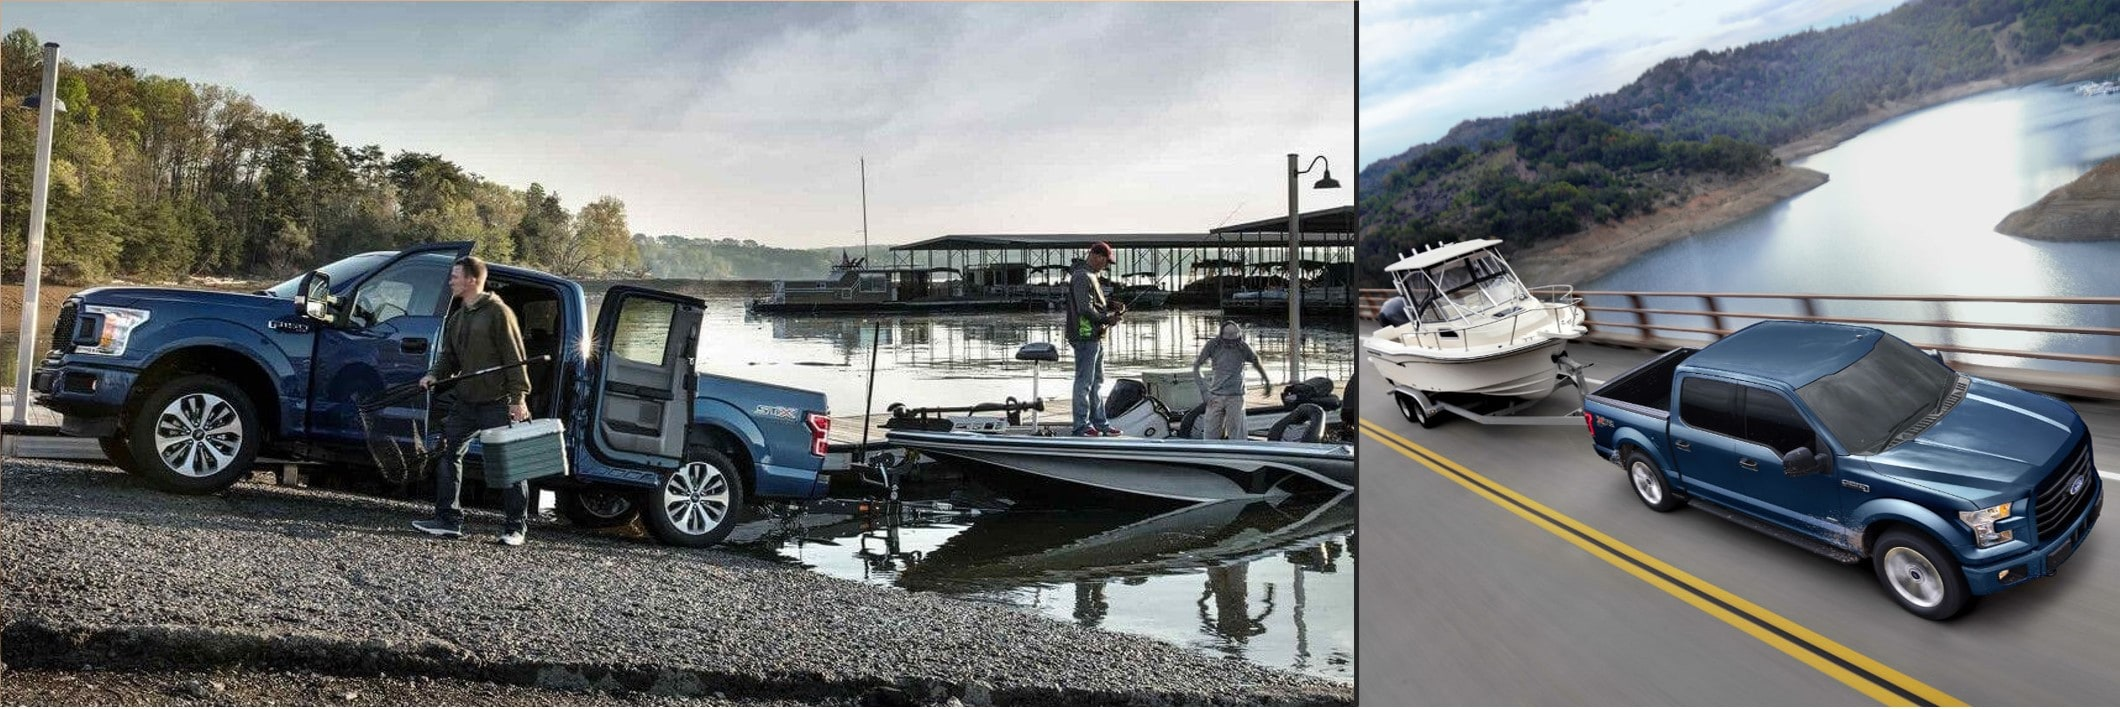 a 2018 F-150 towing a boat next to a 2017 F-150 towing a boat on the road